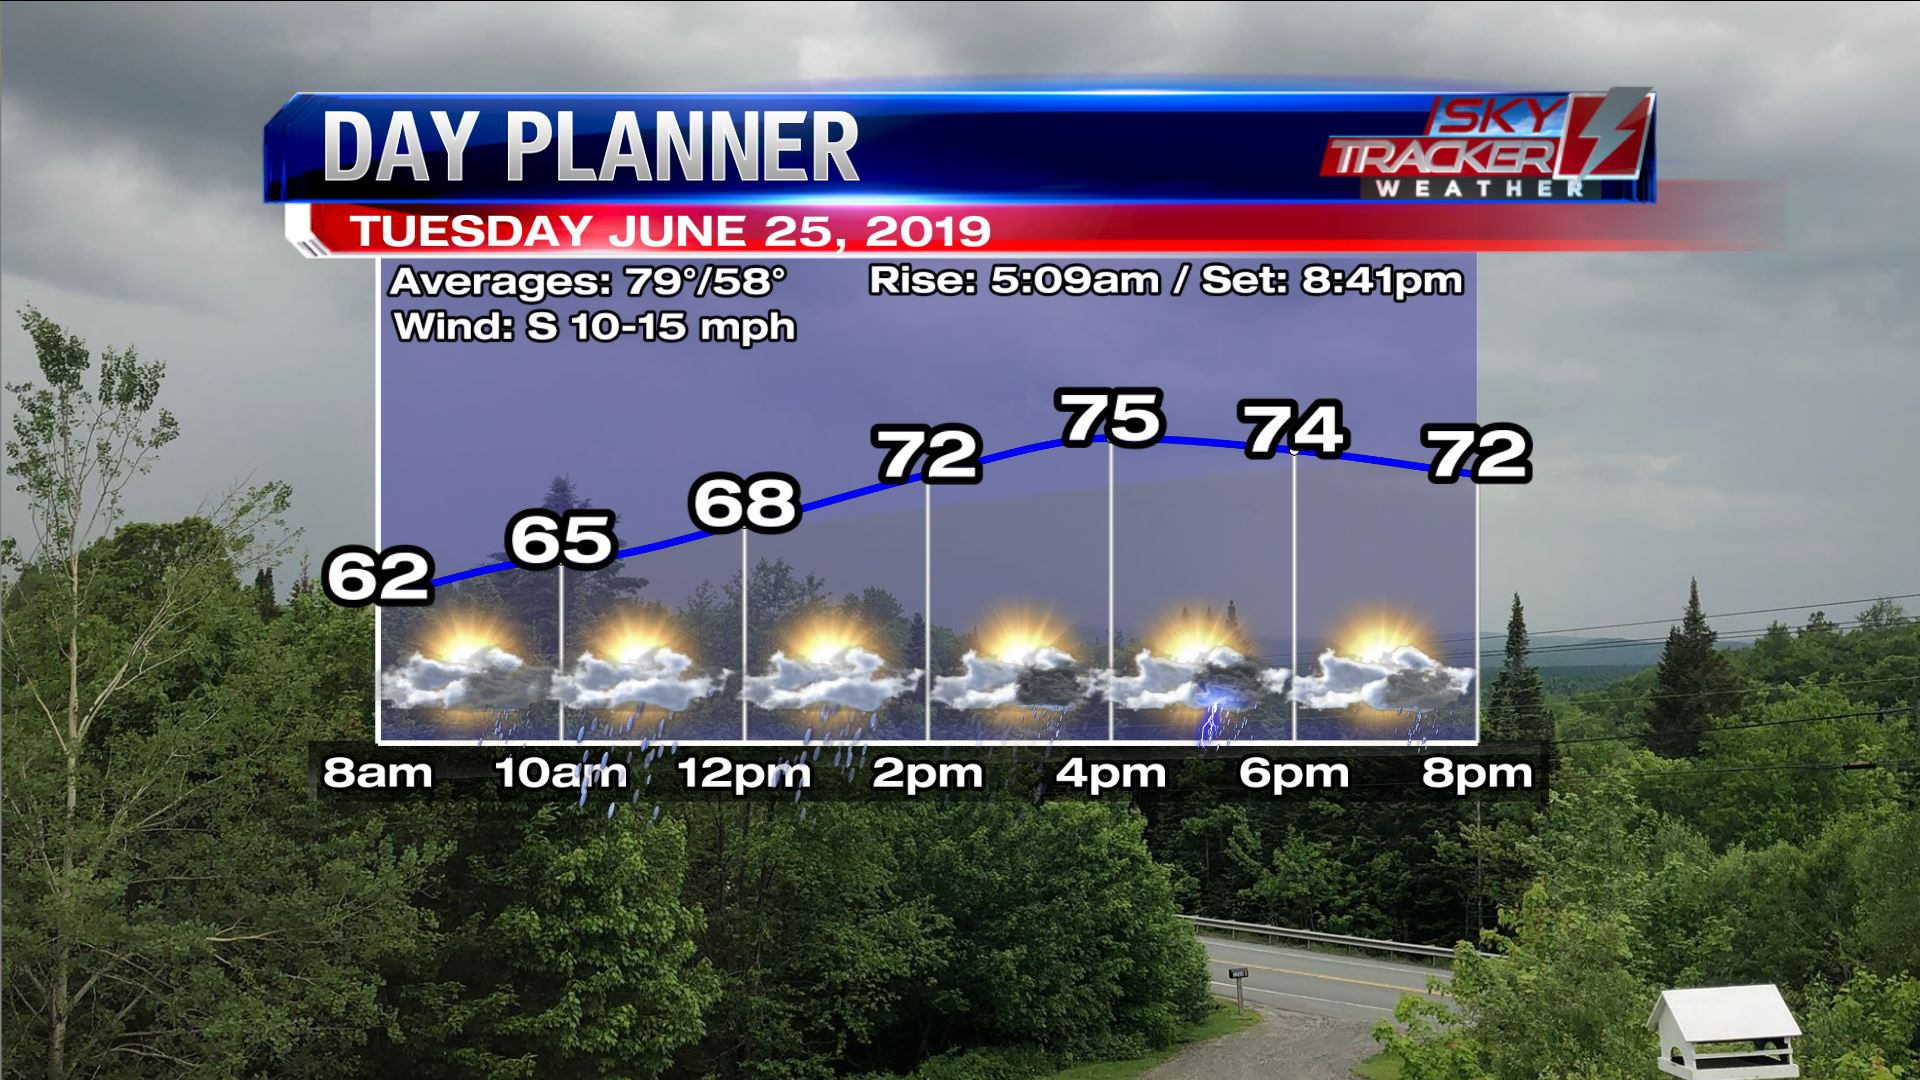 Planner for Tuesday June 25 2019